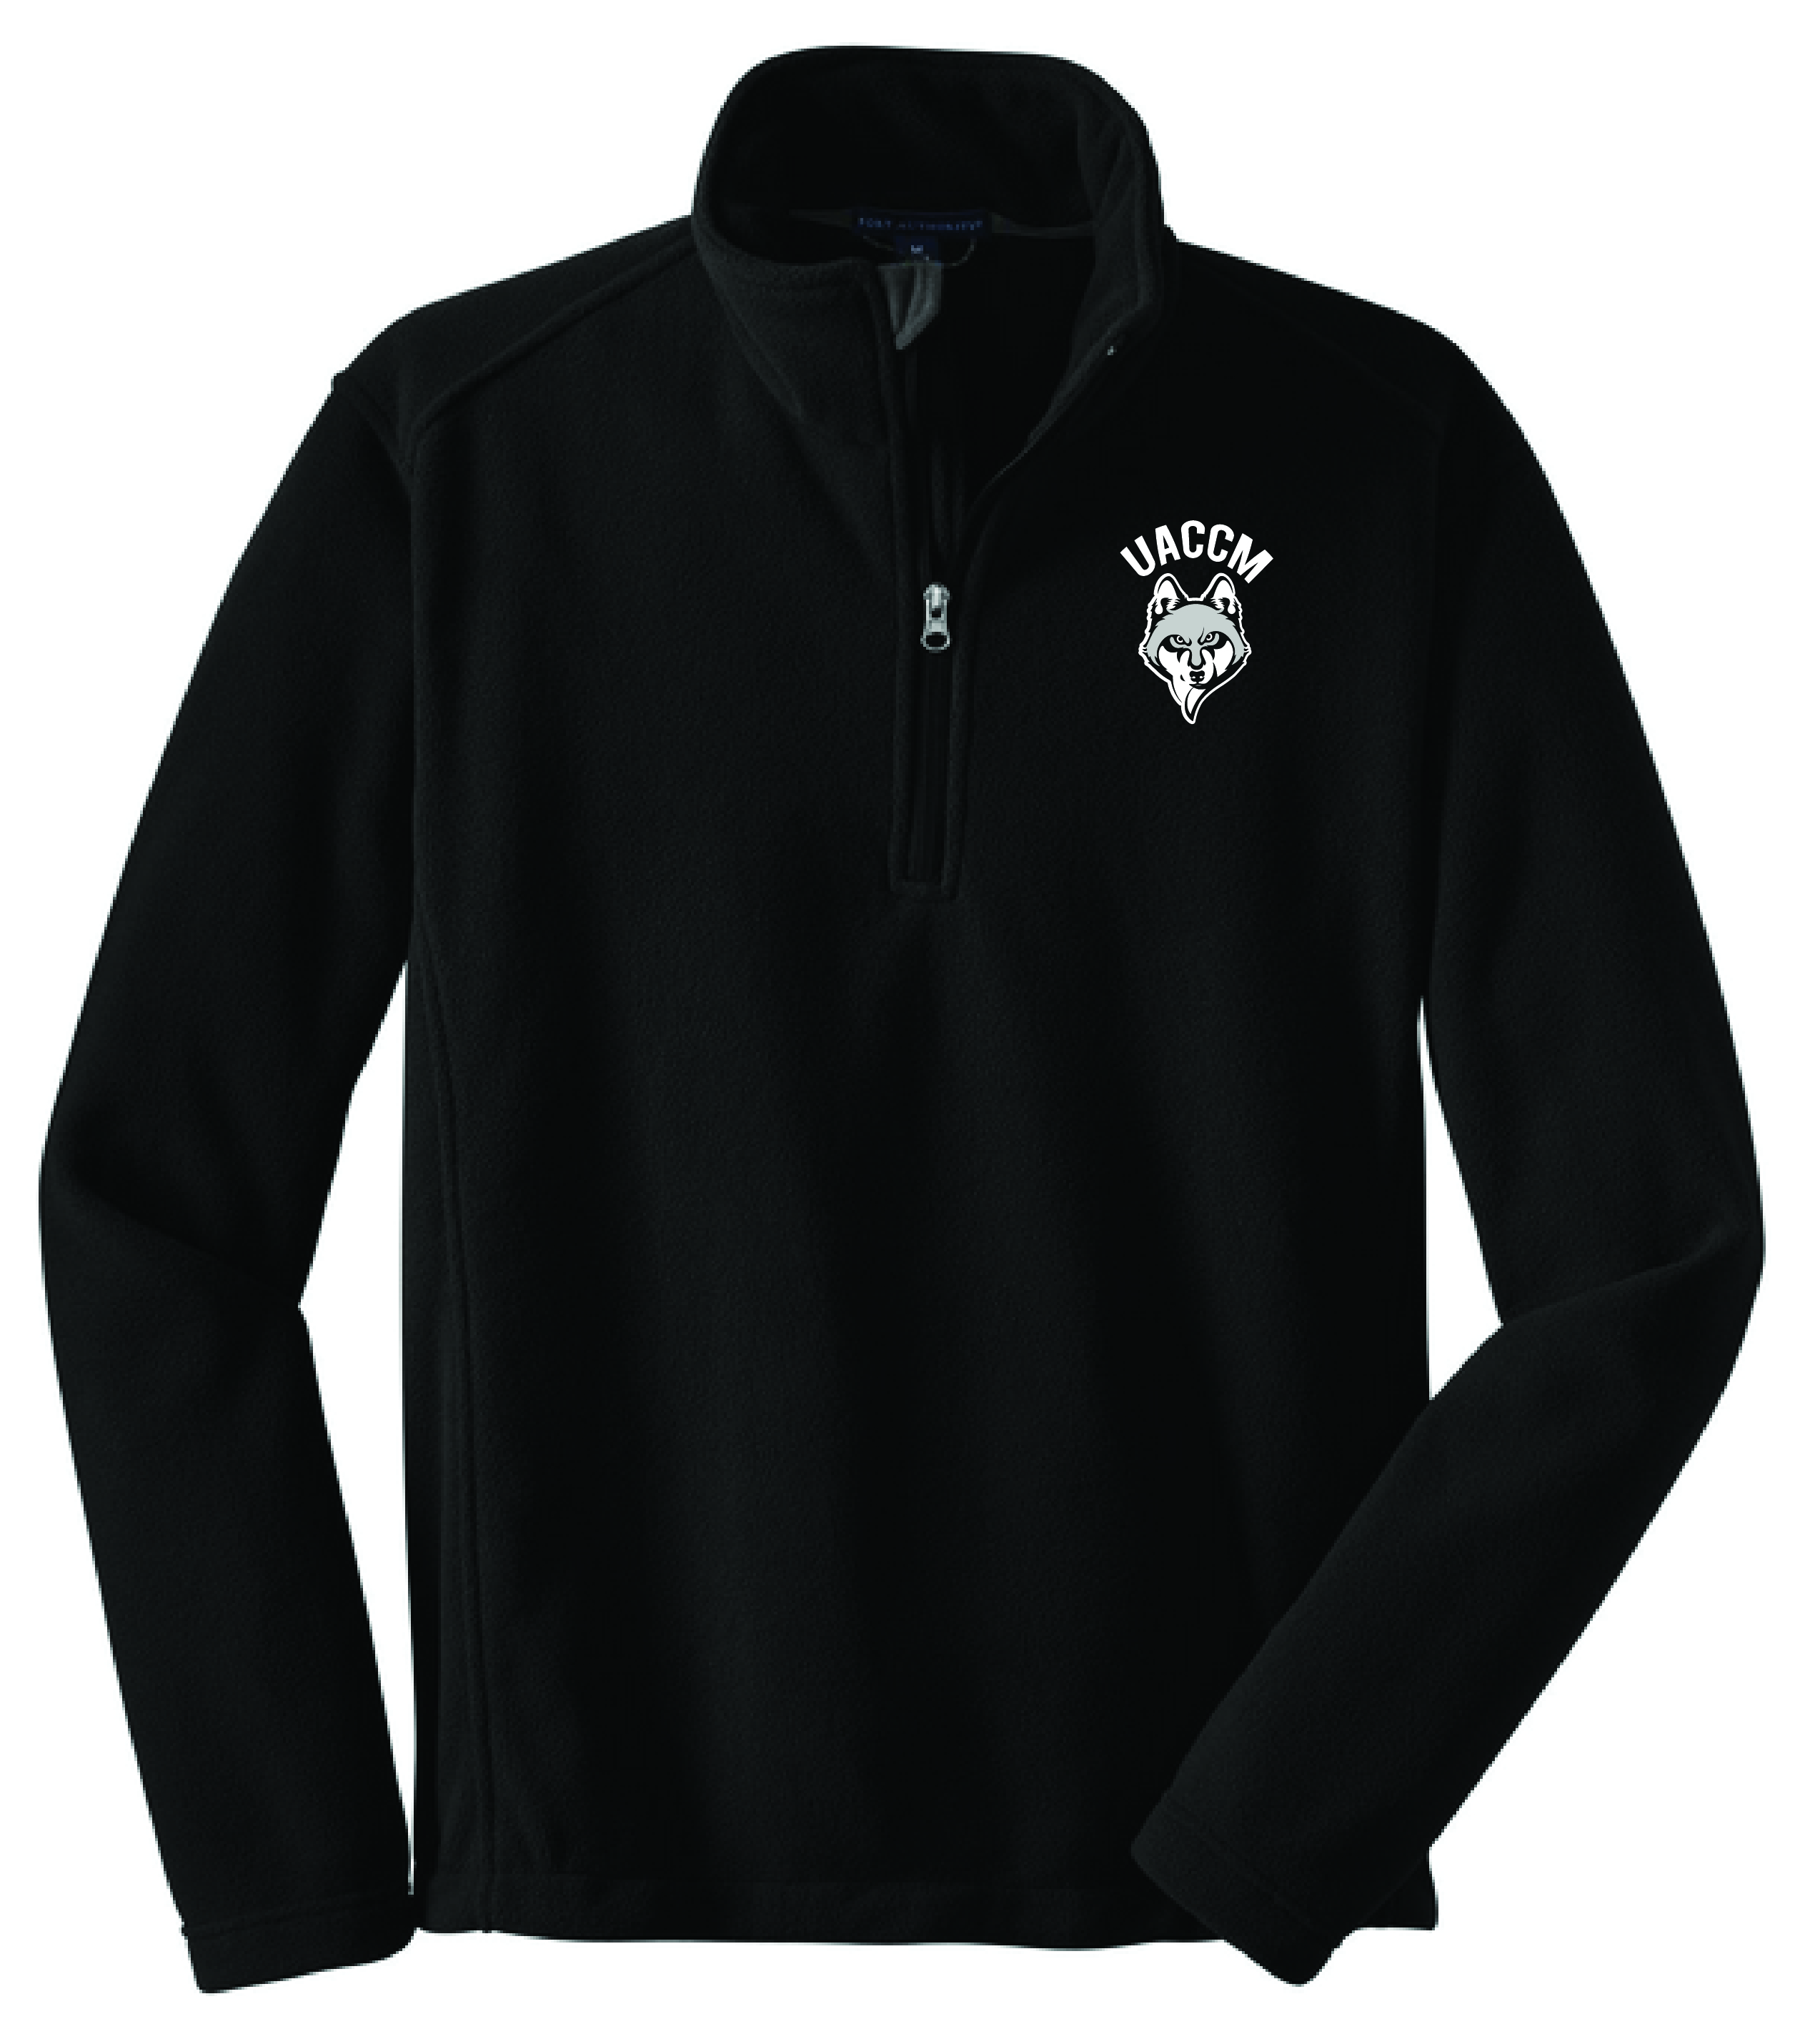 UACCM Fleece 1/4 Zip